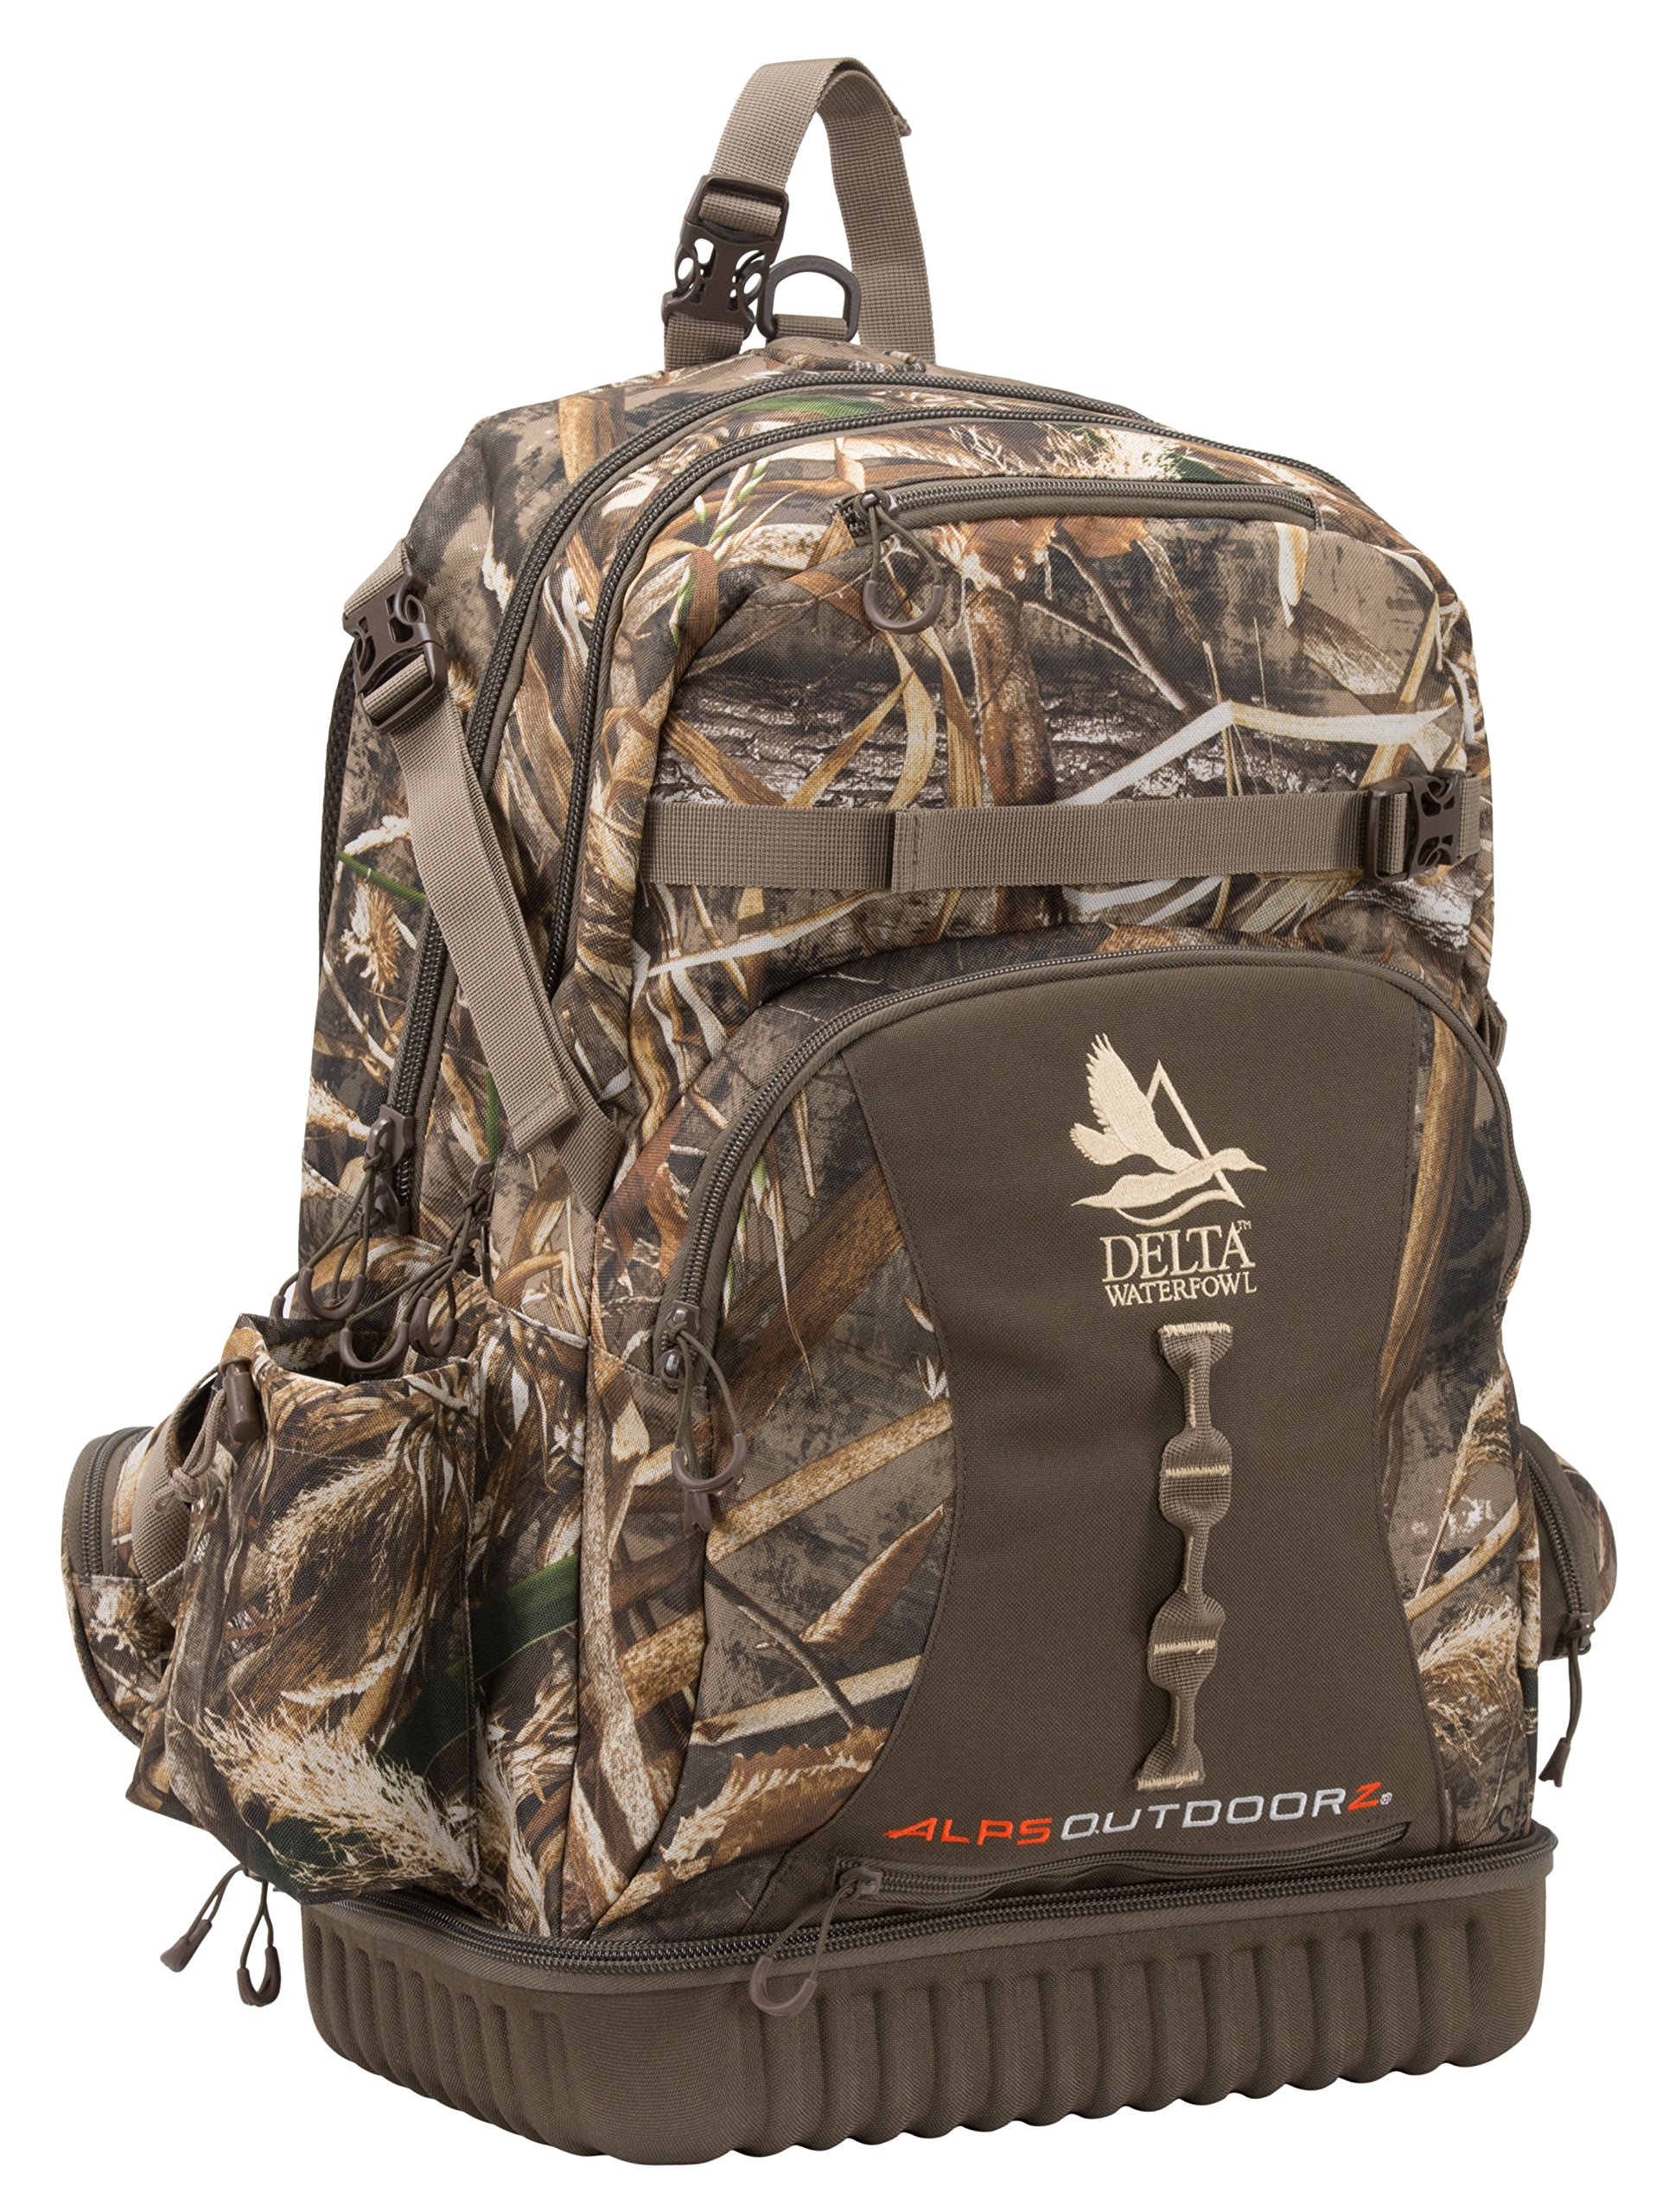 ALPS OutdoorZ Delta Waterfowl Backpack Blind Bag